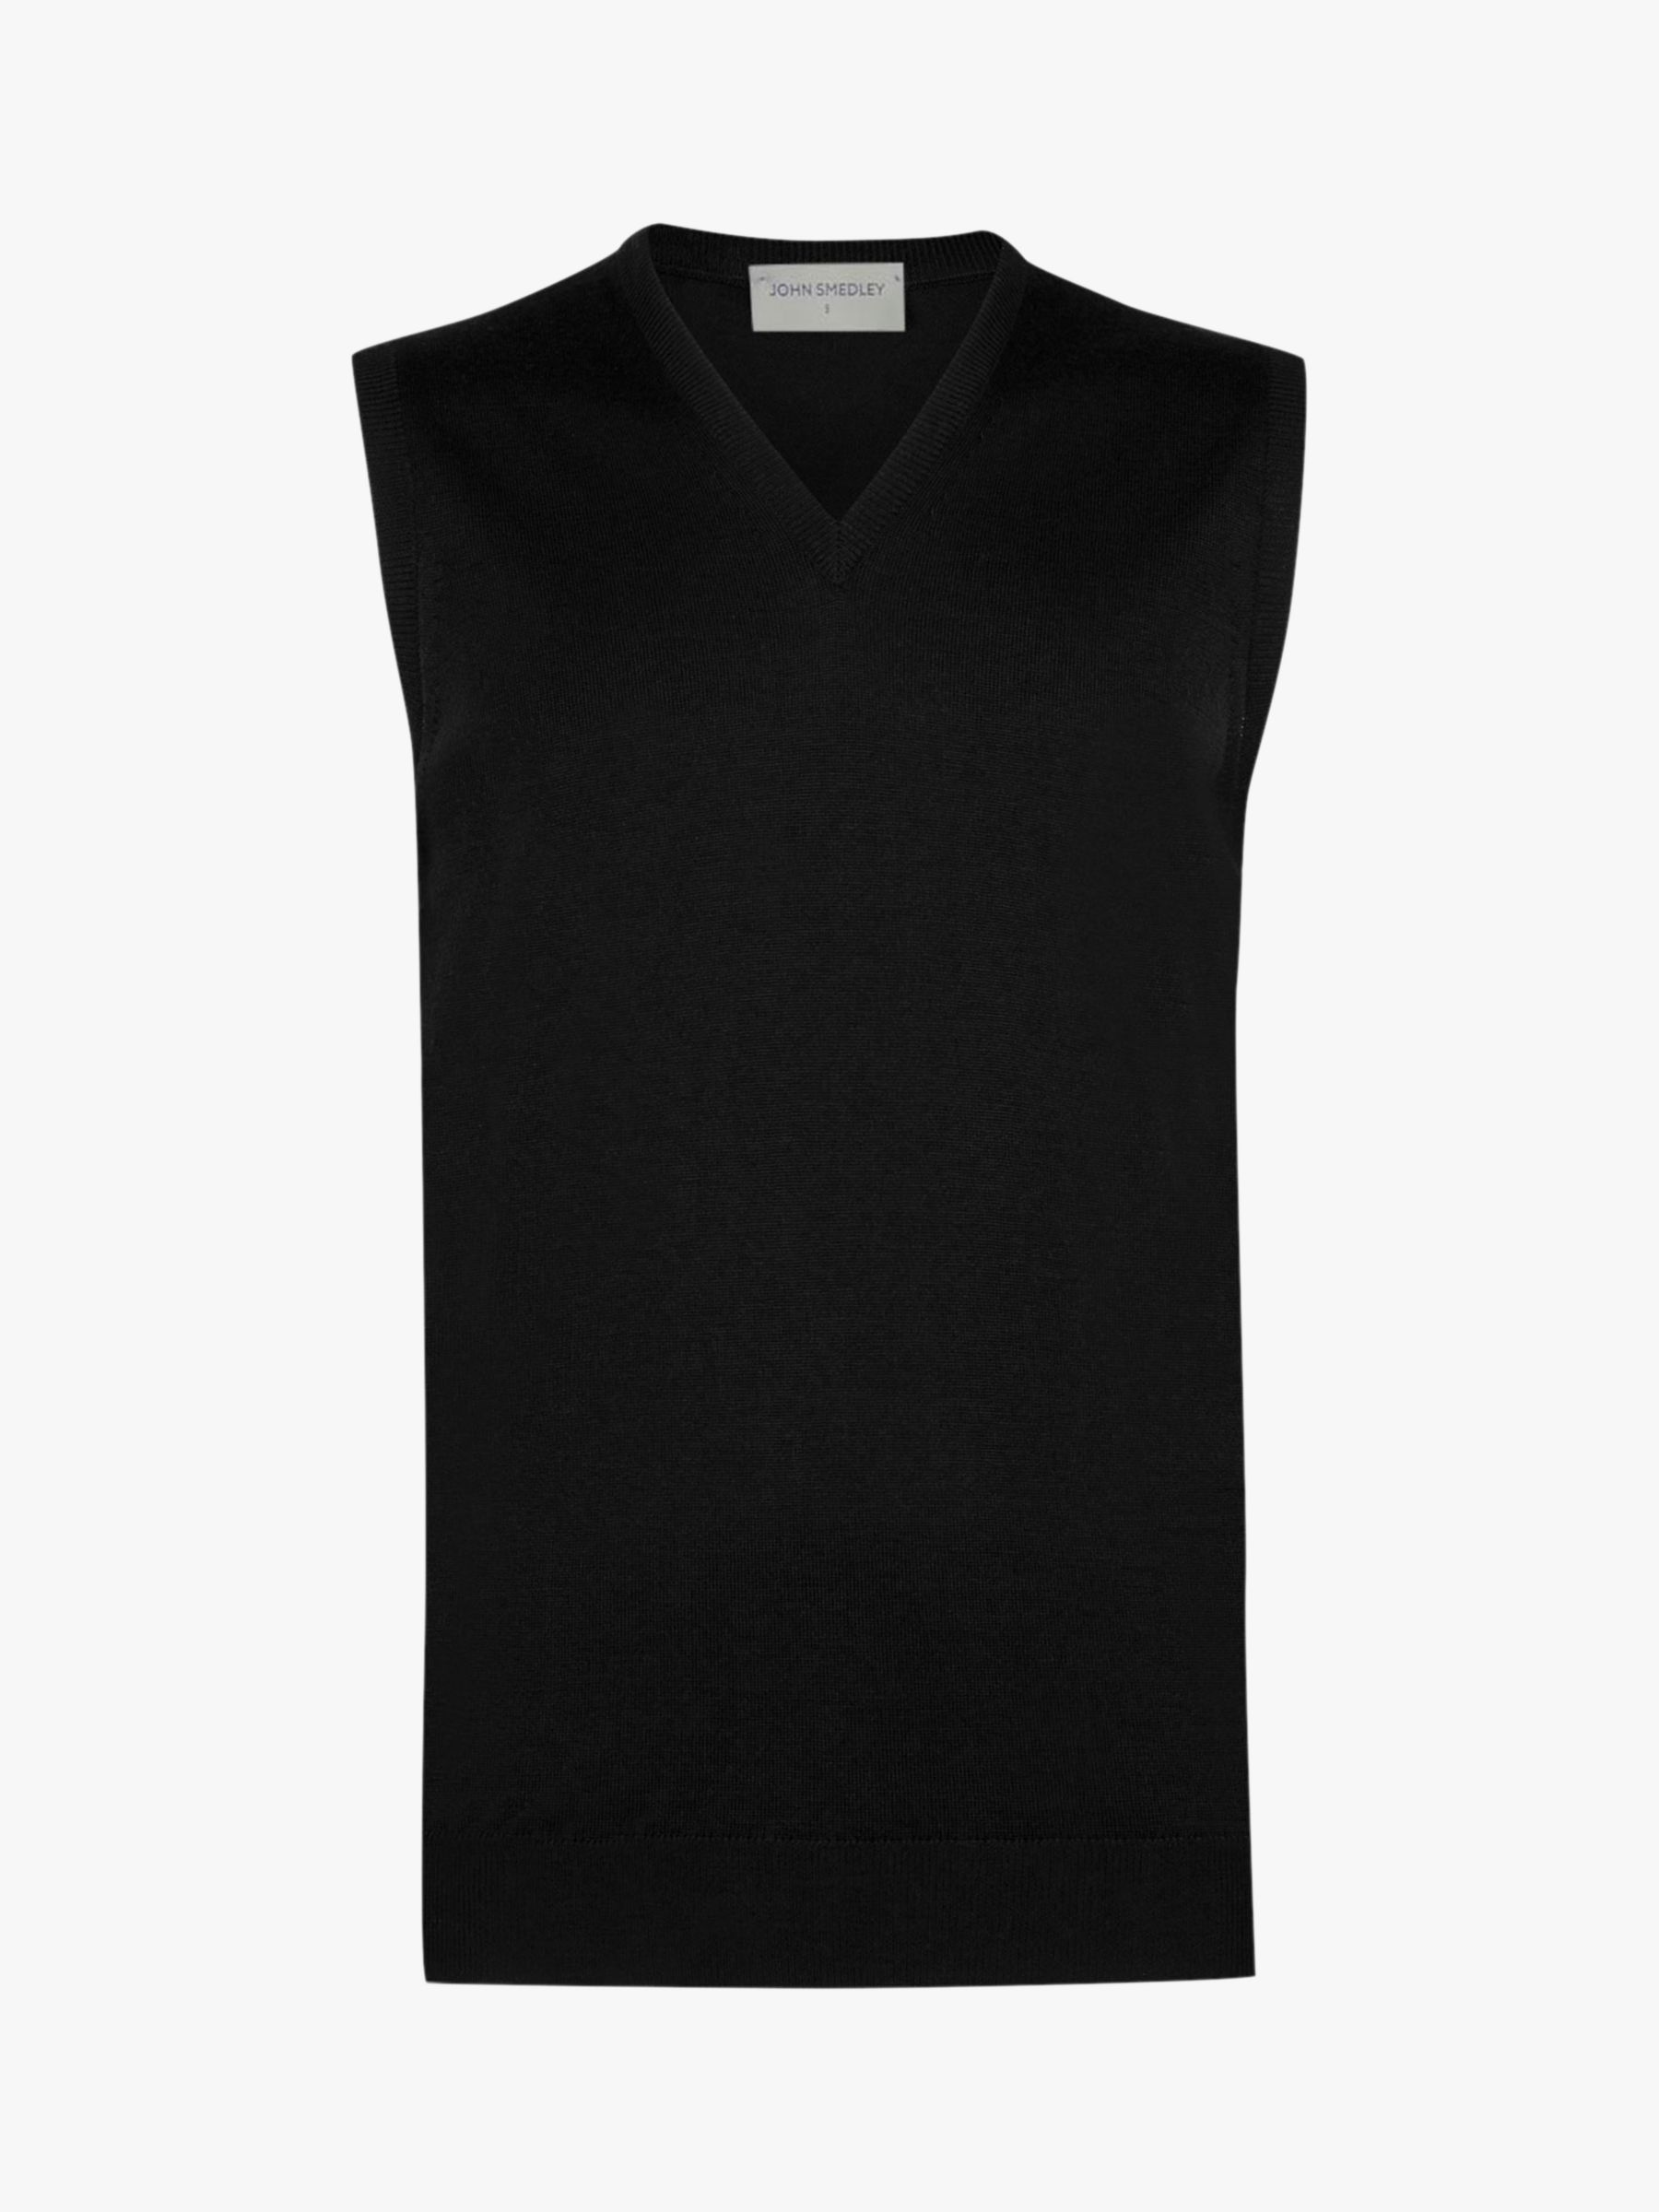 John Smedley John Smedley Hadfield Sleeveless V Neck Pullover, Black